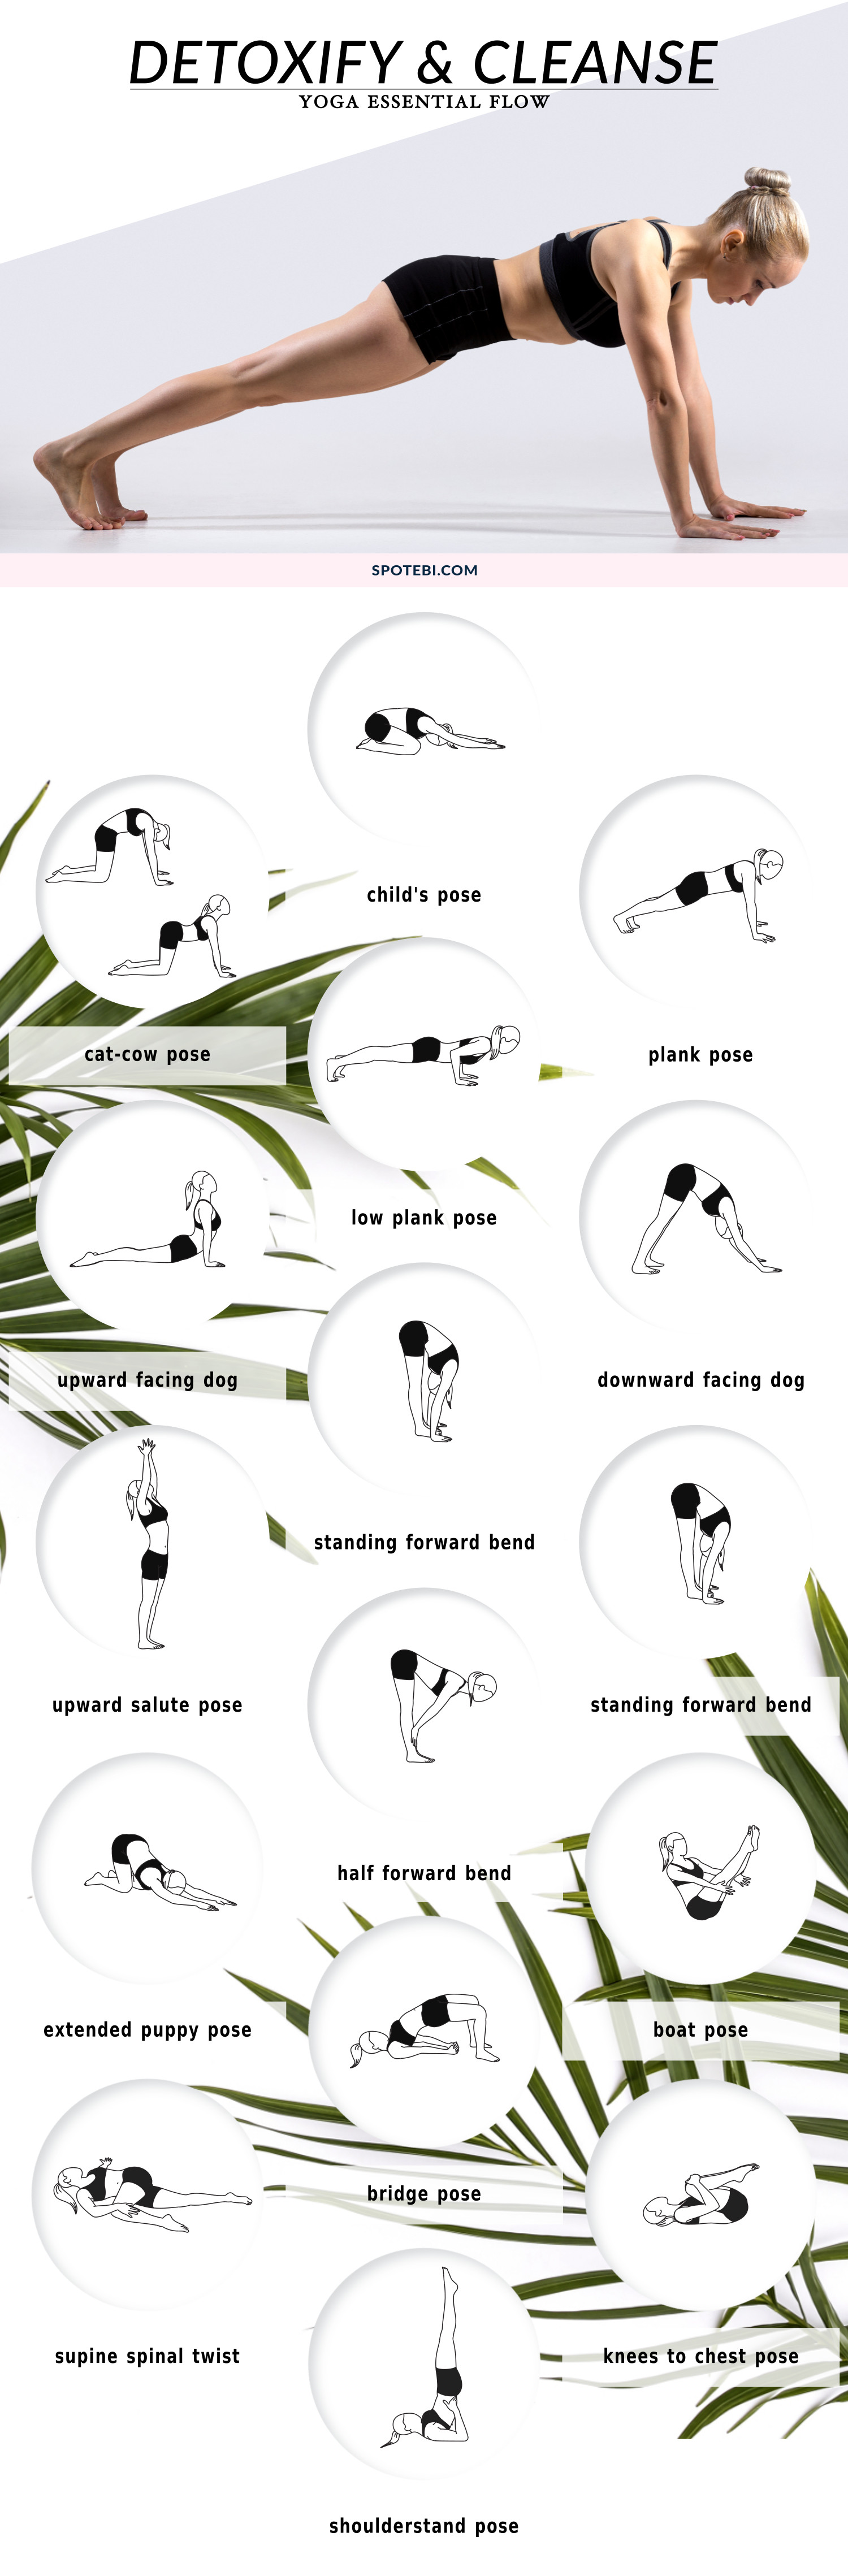 Cleanse your body and regain energy, naturally, with this yoga essential flow. Feel better after a night of partying or an indulgent vacation, detoxify your digestive system, and get back on track! https://www.spotebi.com/yoga-sequences/detoxify-cleanse/